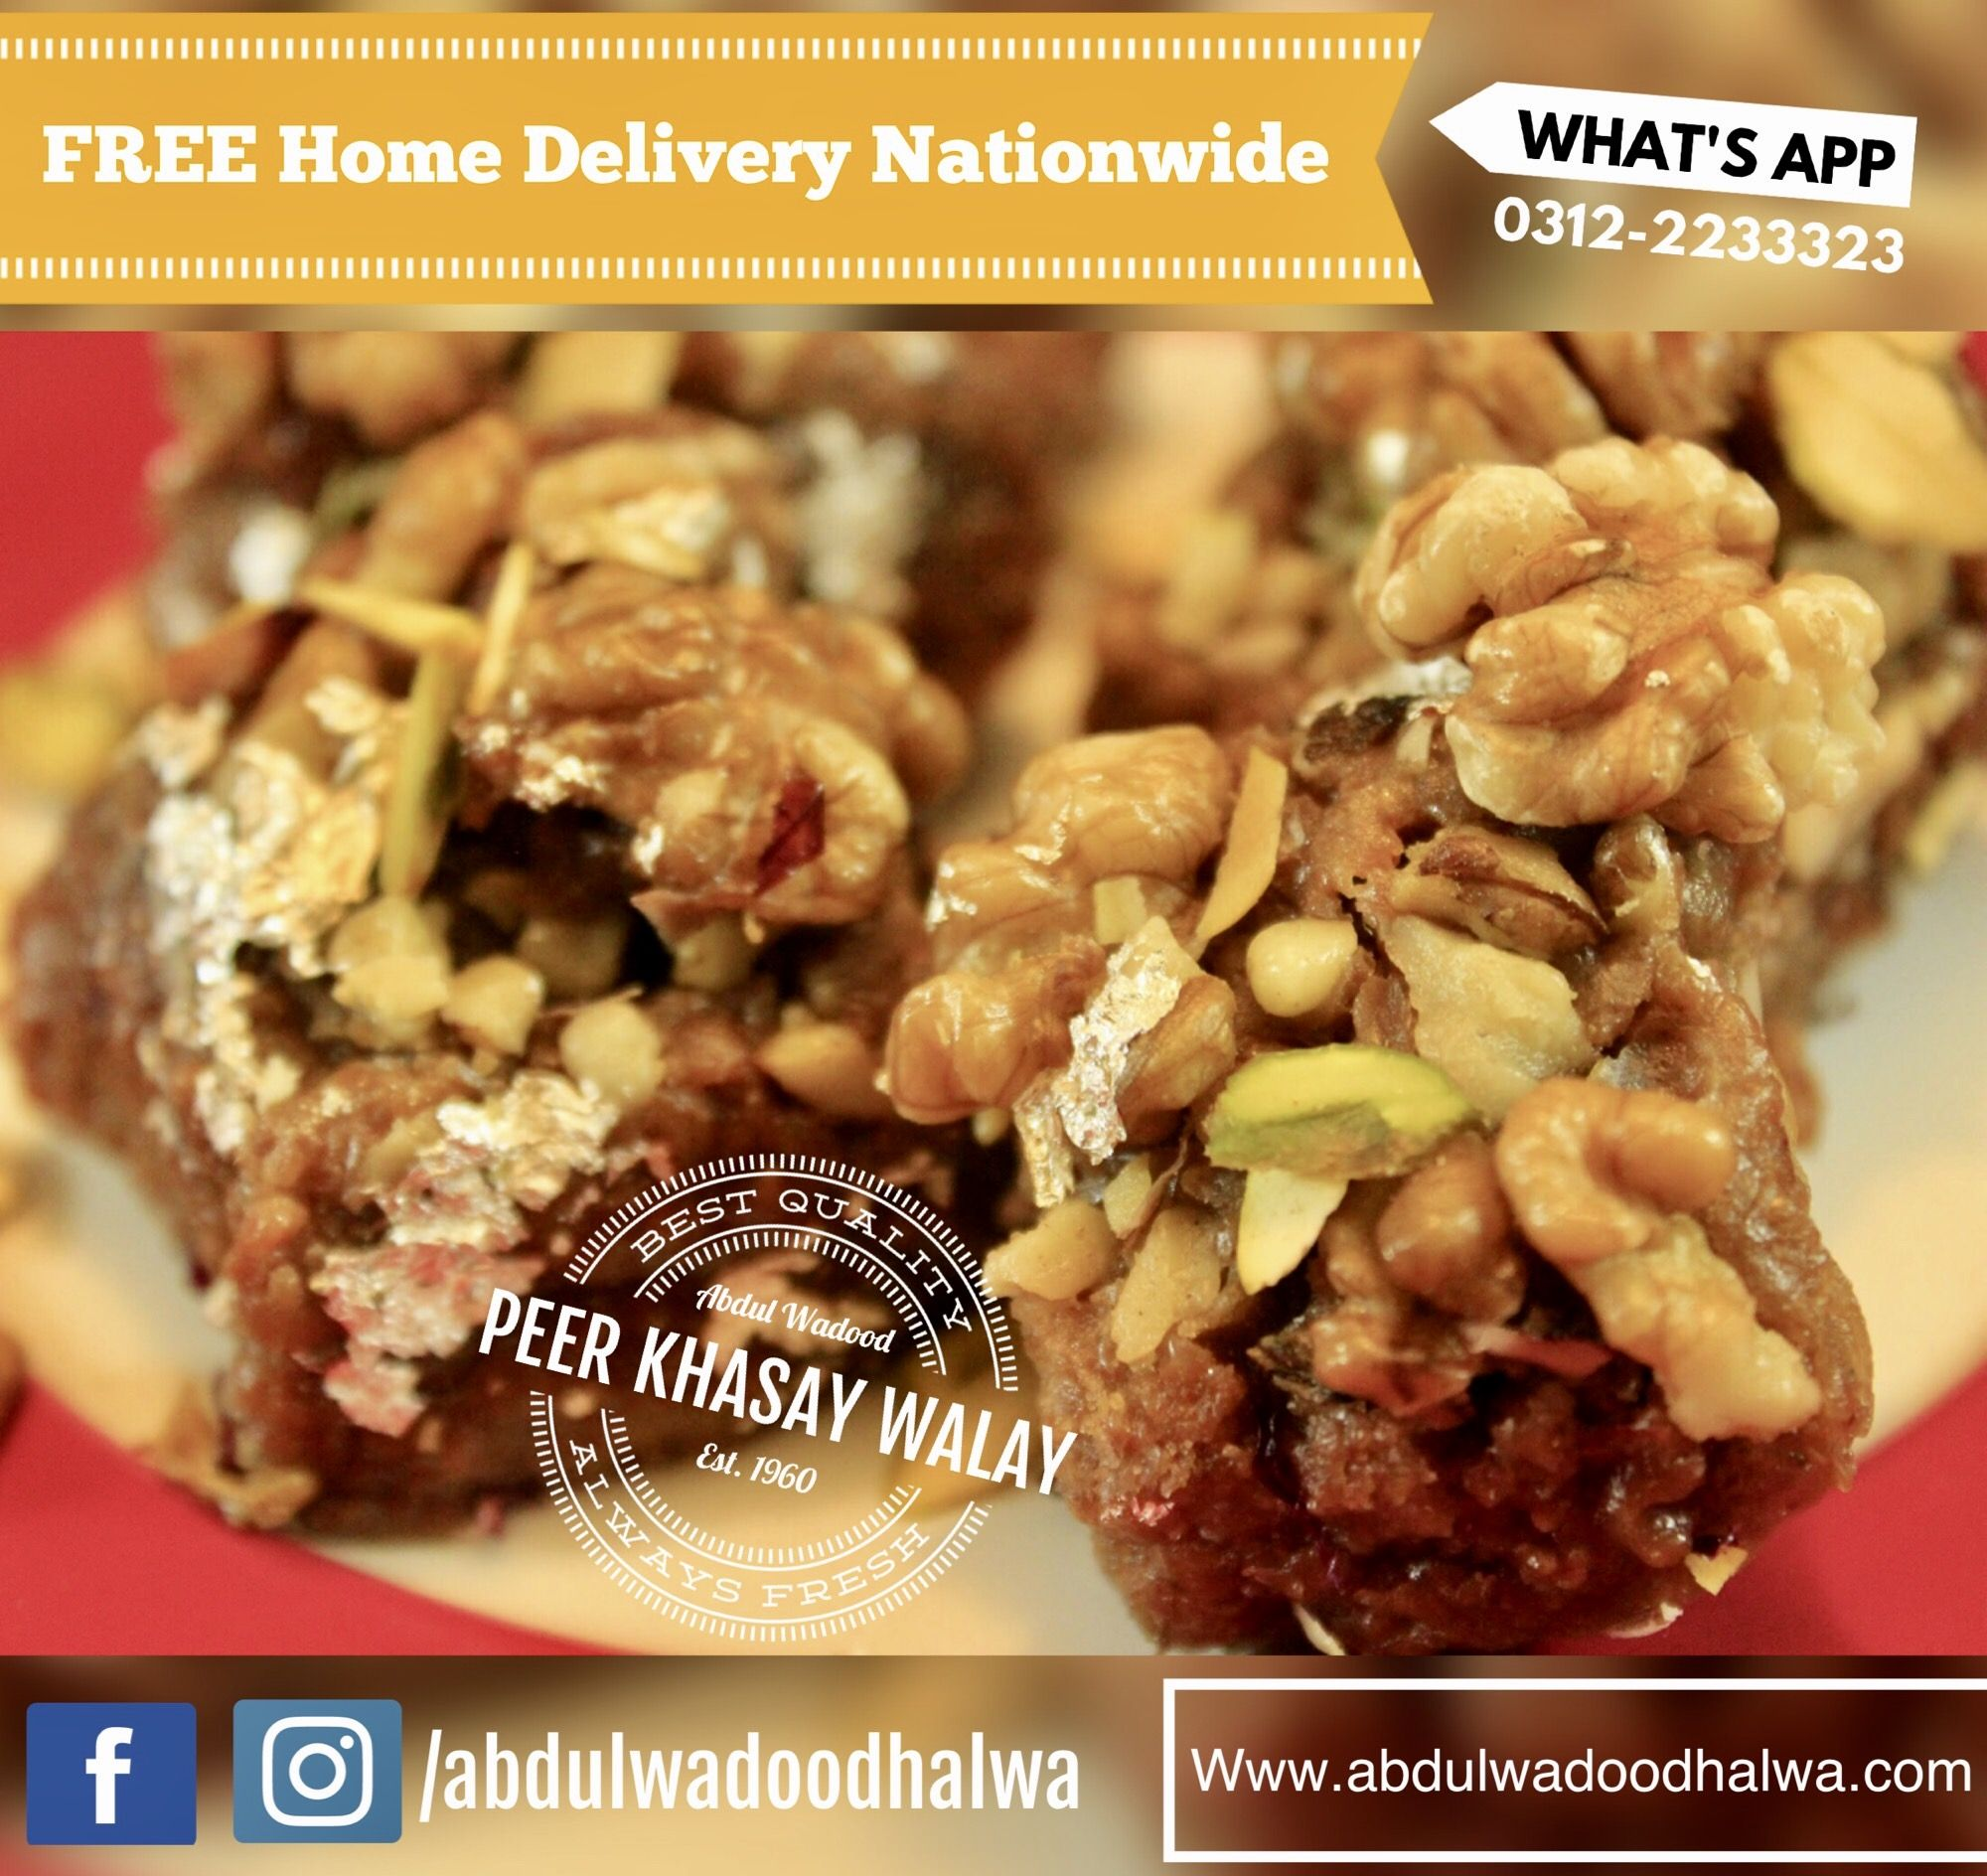 FREE cash on delivery service (COD) across all Pakistan